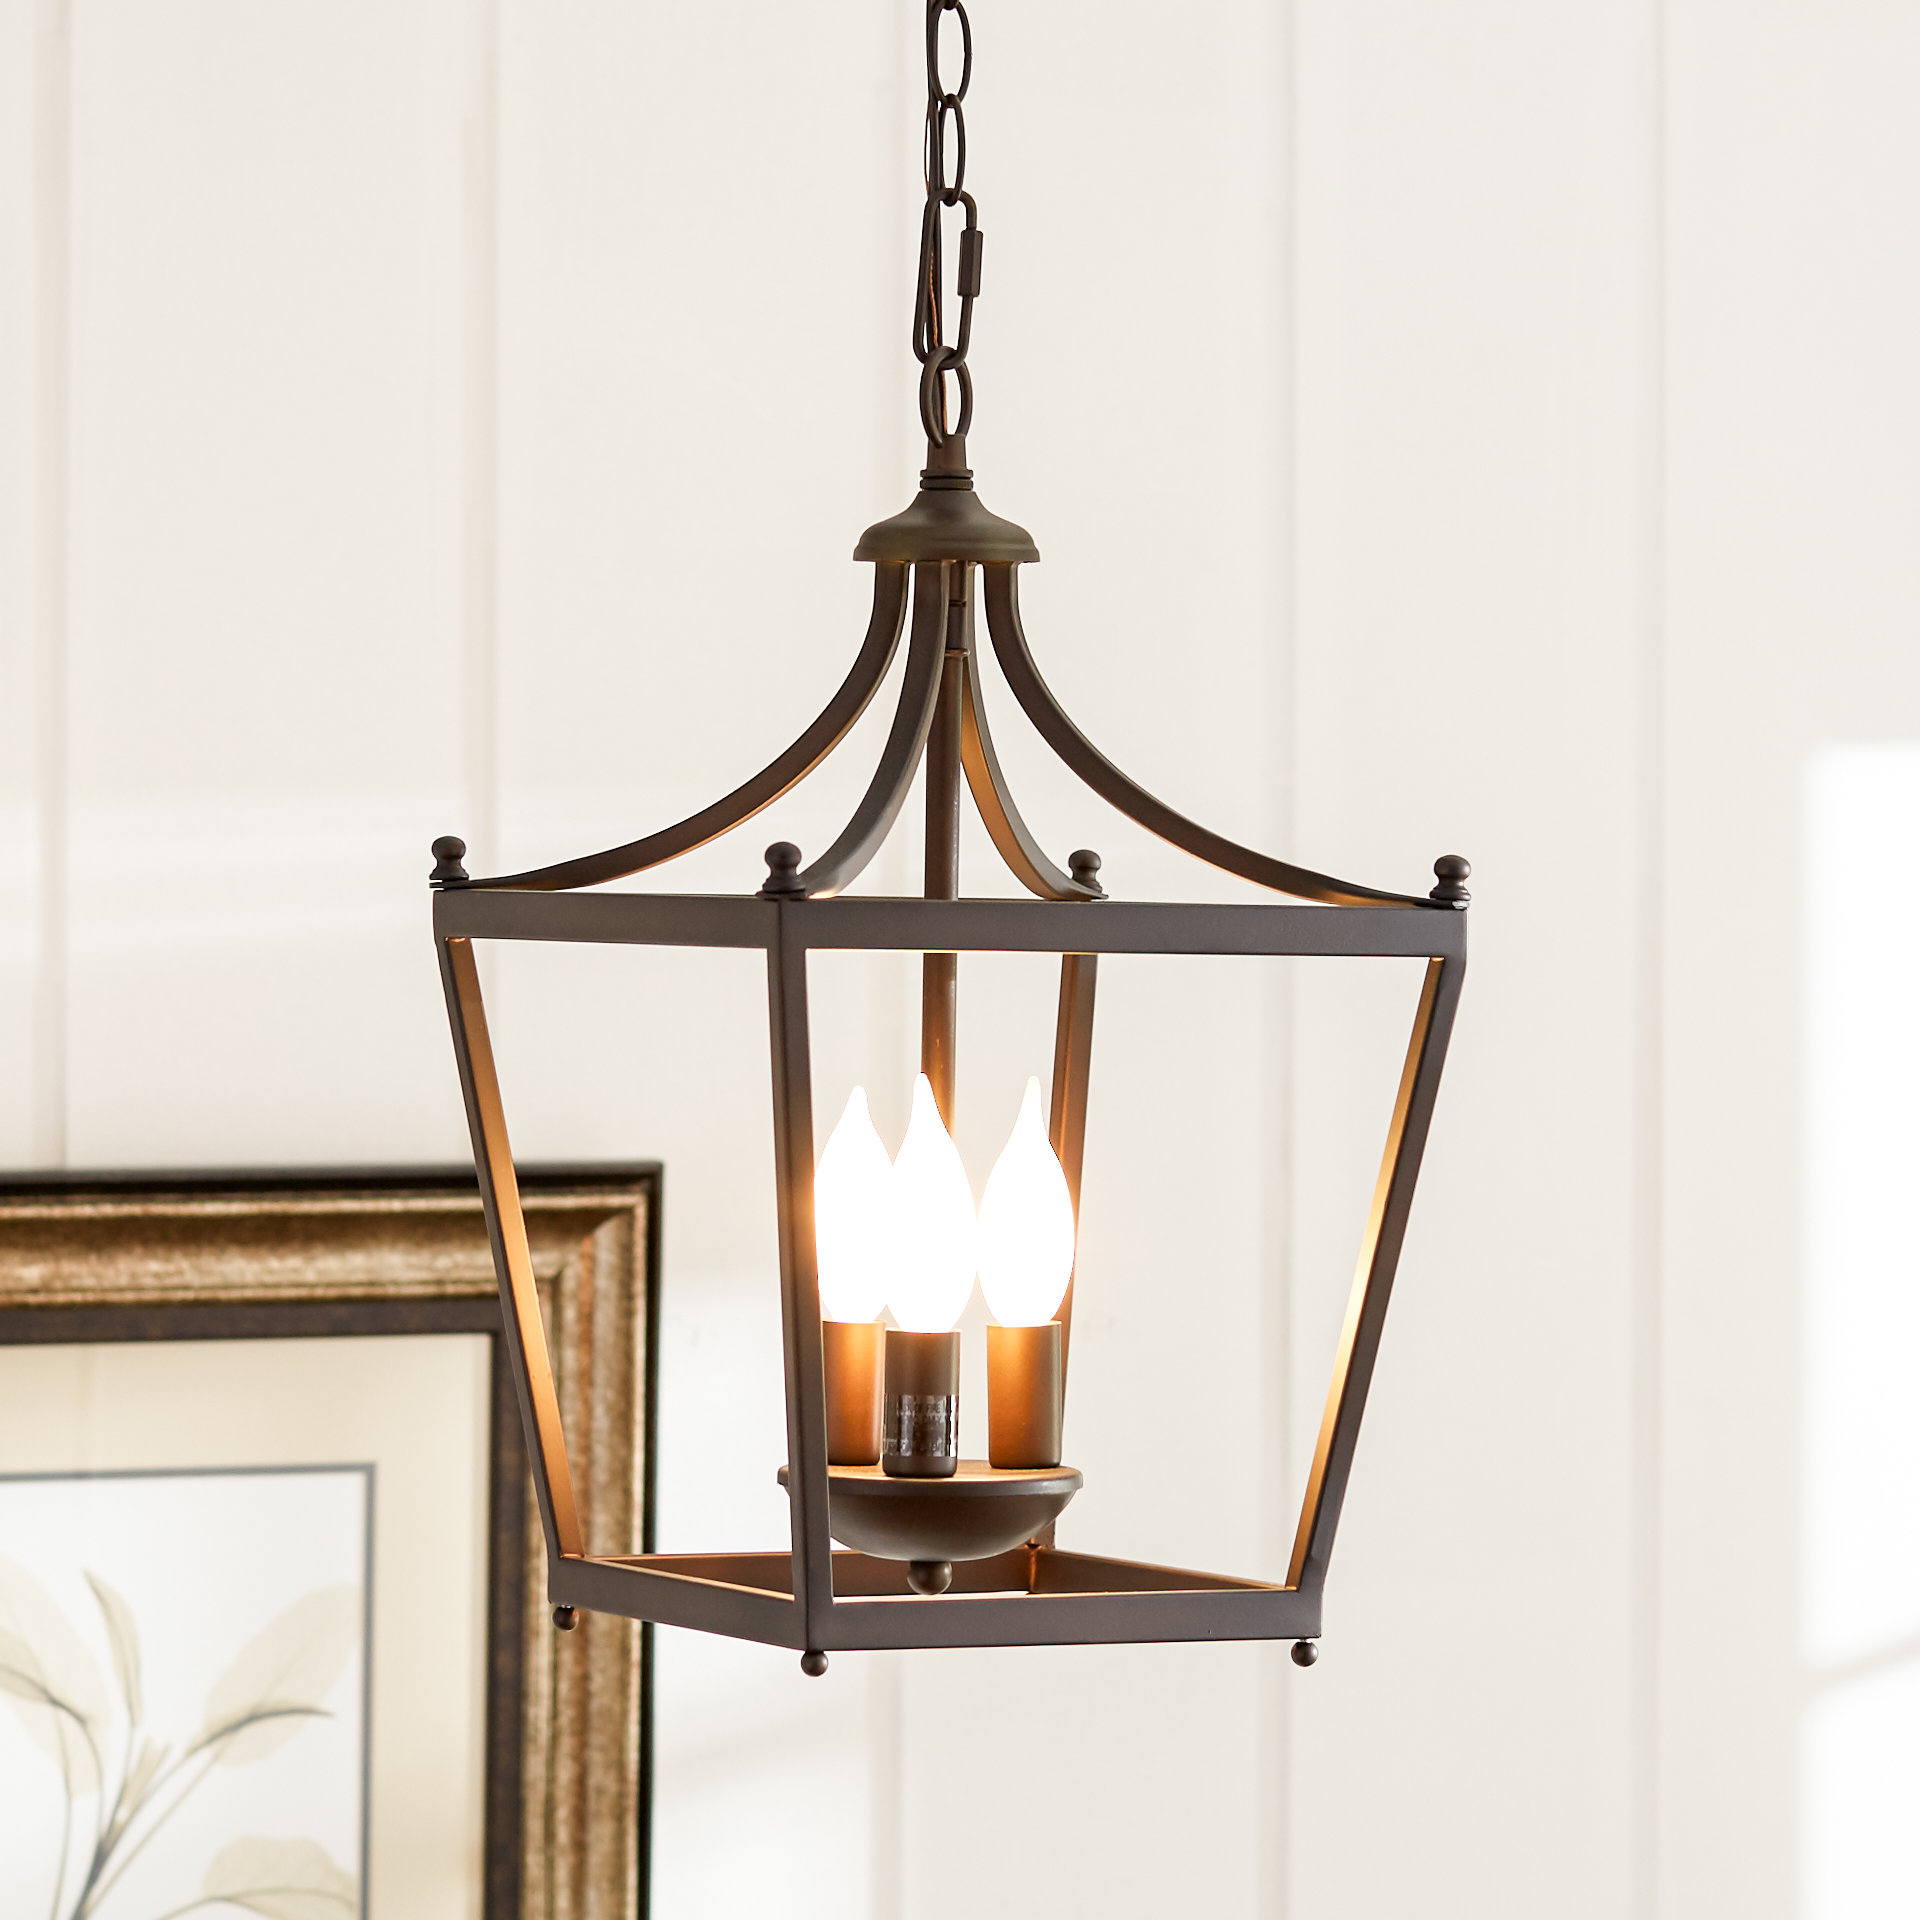 Birch Lane™ Heritage Gabriella 3-Light Lantern Geometric Pendant inside Armande 3-Light Lantern Geometric Pendants (Image 9 of 30)